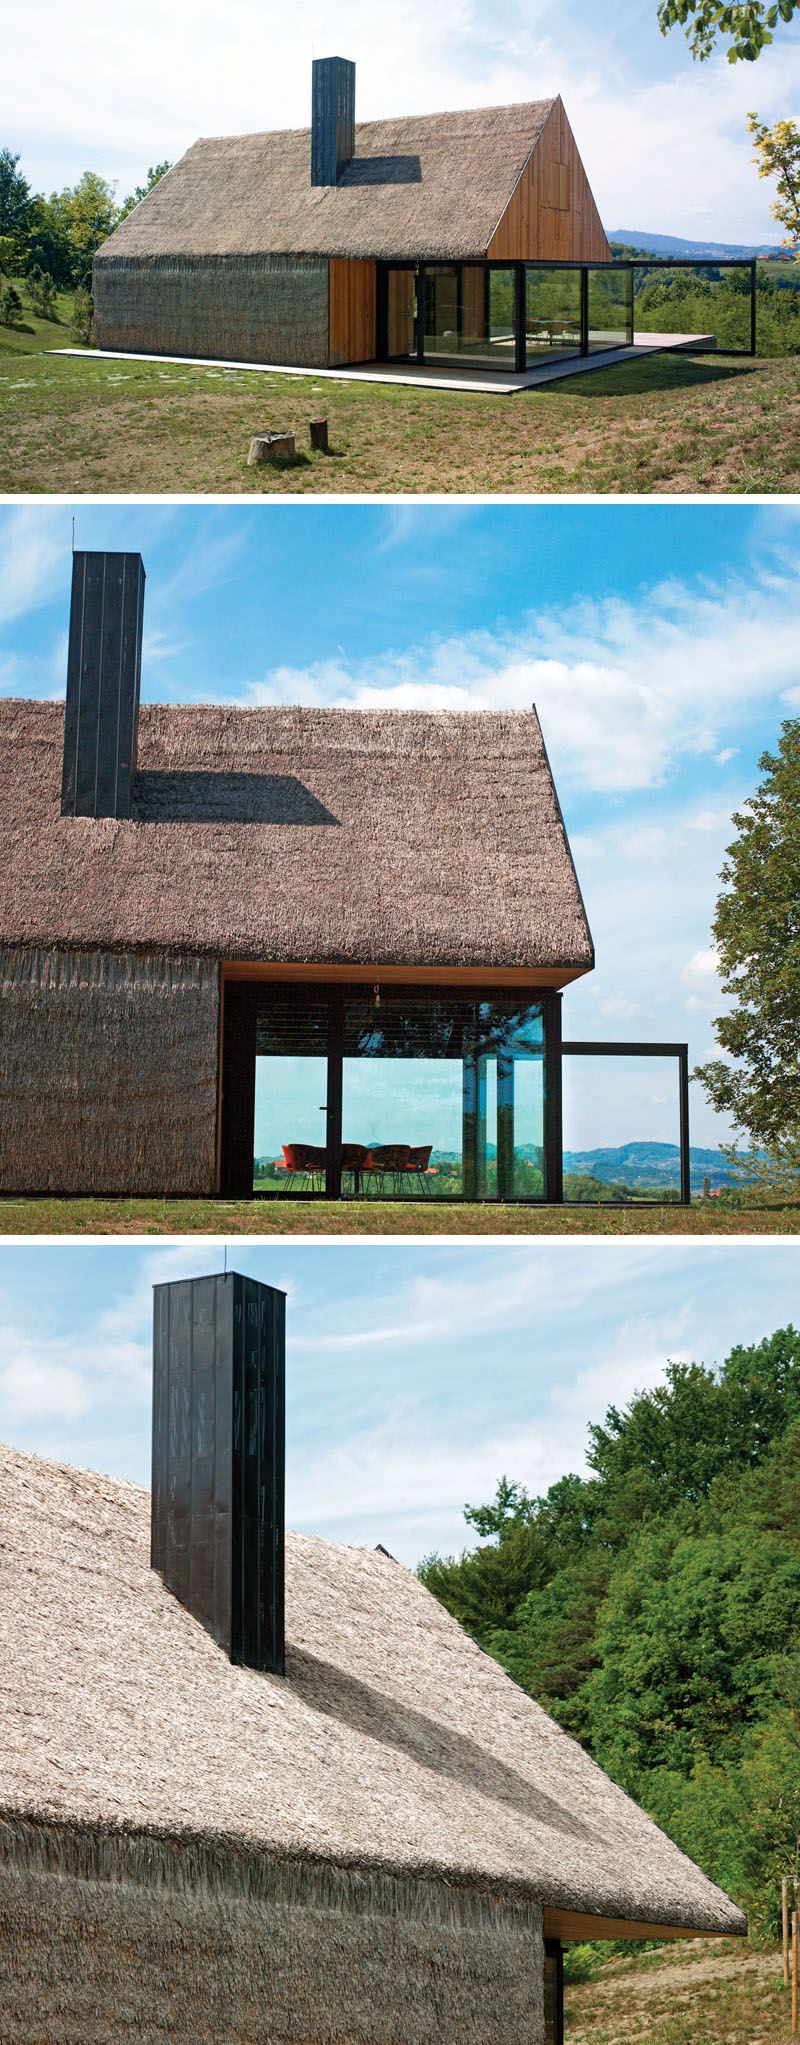 12 Examples Of Modern Houses And Buildings That Have A Thatched Roof Thatched Roof Traditional Building Small House